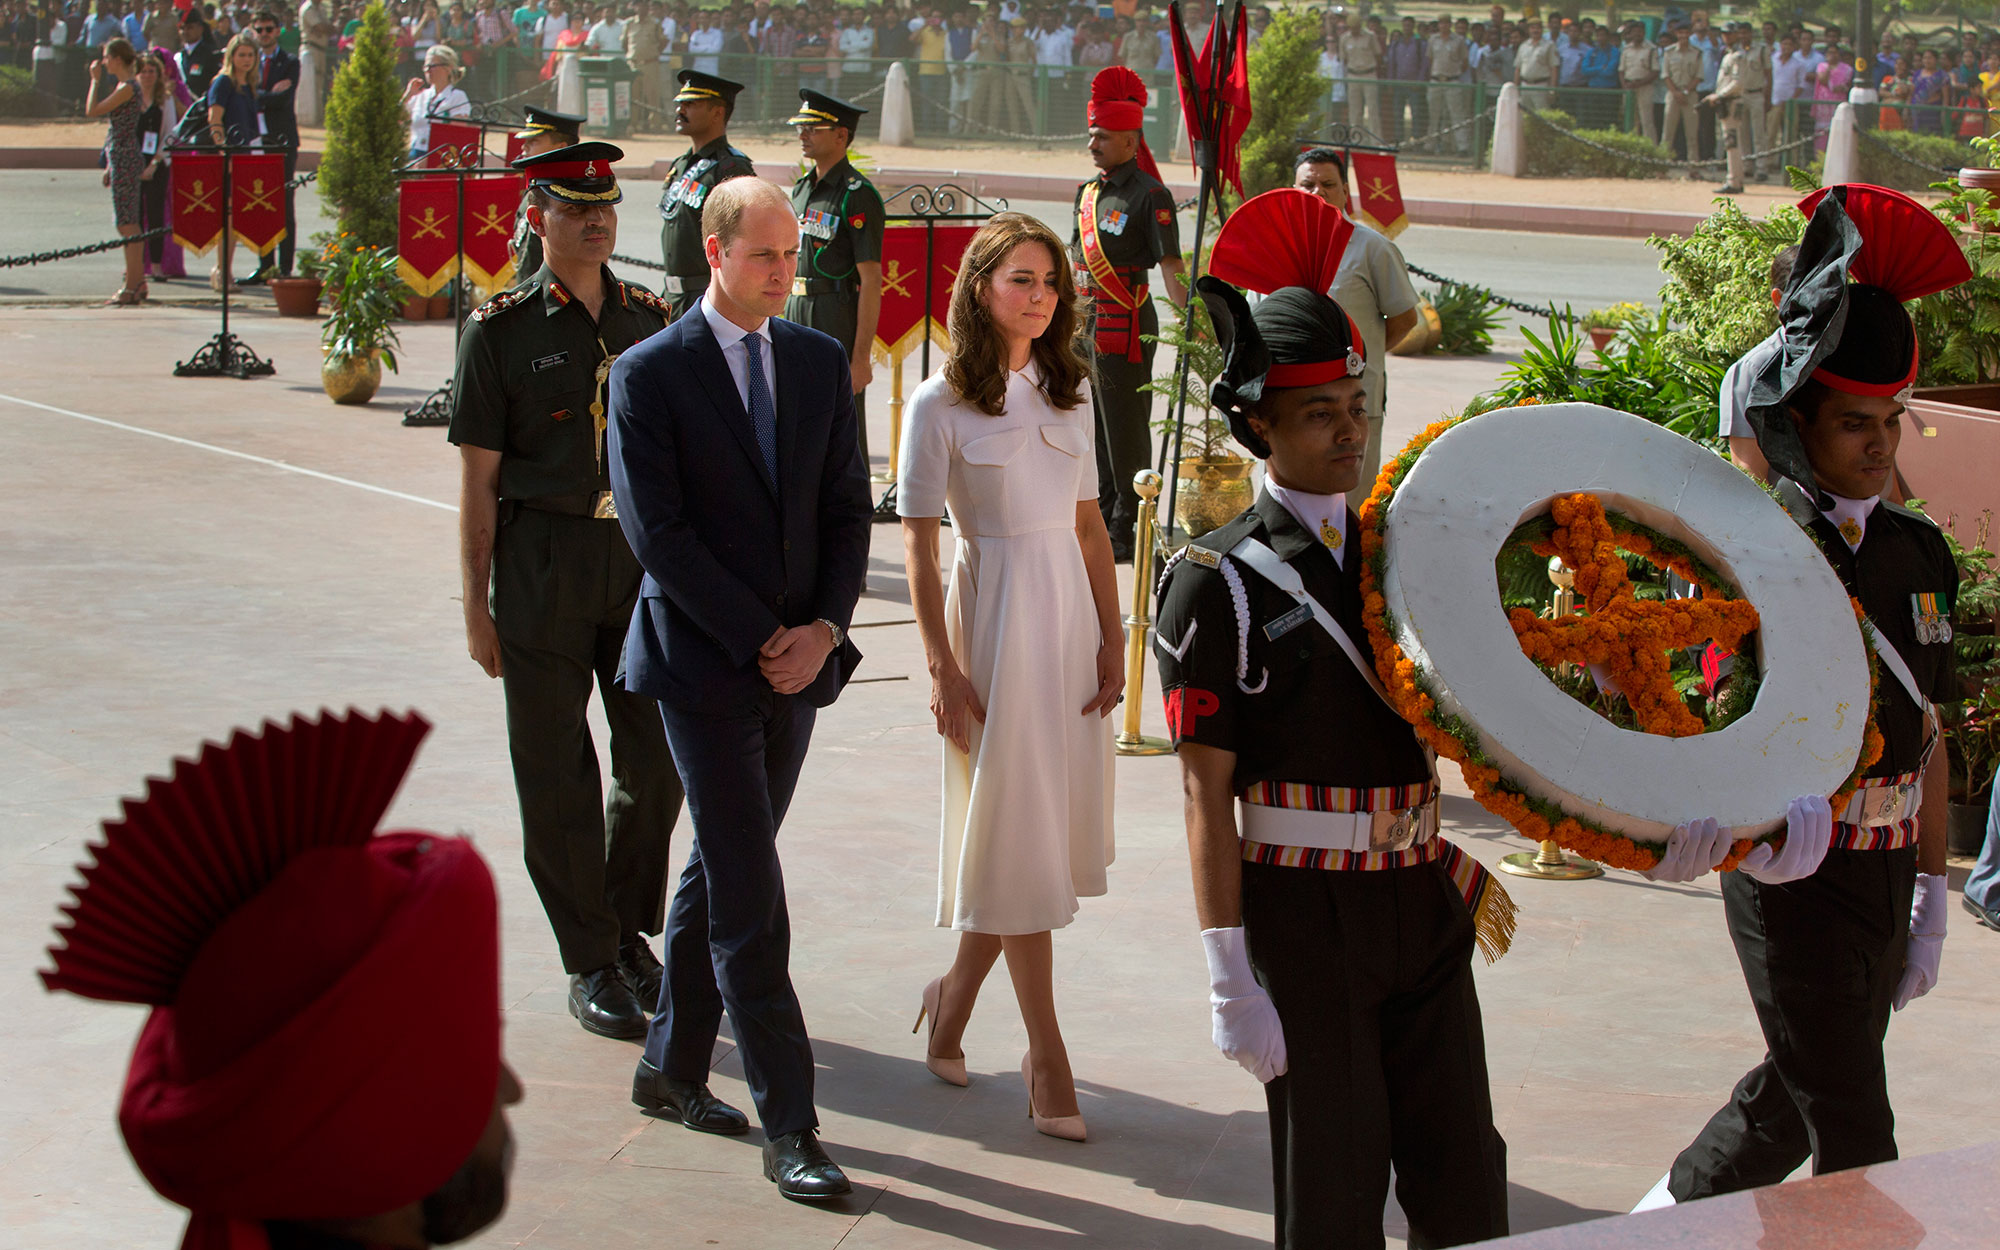 Prince William and Kate Middleton Embark on their Royal Tour of India and Bhutan: Laying a Wreath at India Gate